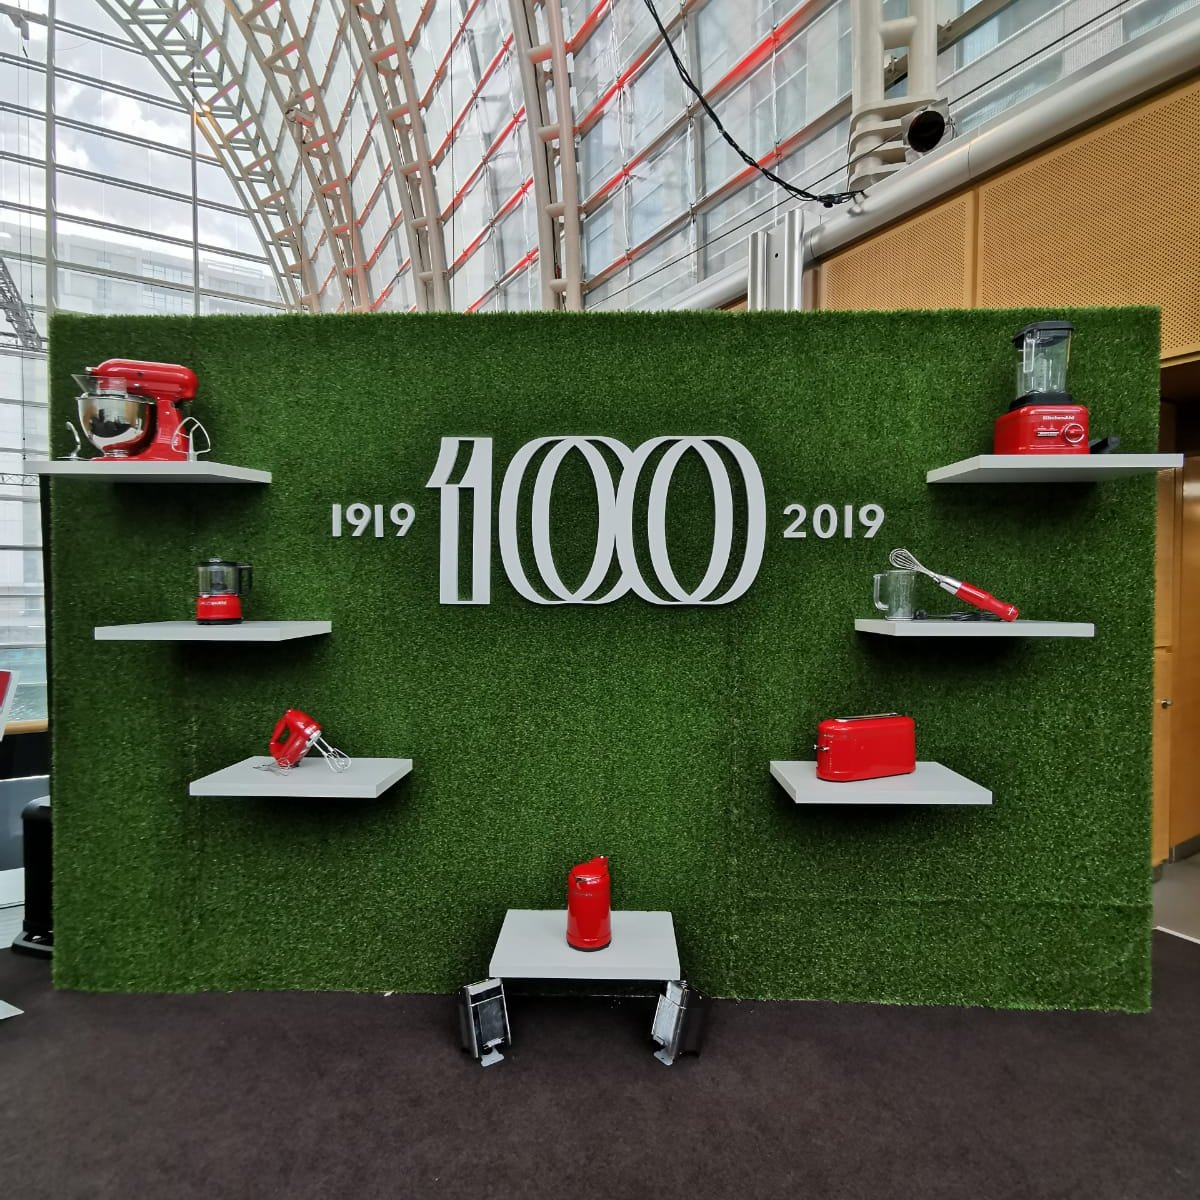 test Twitter Media - Luxury appliance brand, KitchenAid is celebrating its centenary marking 100 years since the iconic stand mixer was born in 1919. Read the full story on our blog, available here: https://t.co/8AVphJsnZQ https://t.co/HYDwZKcZXw